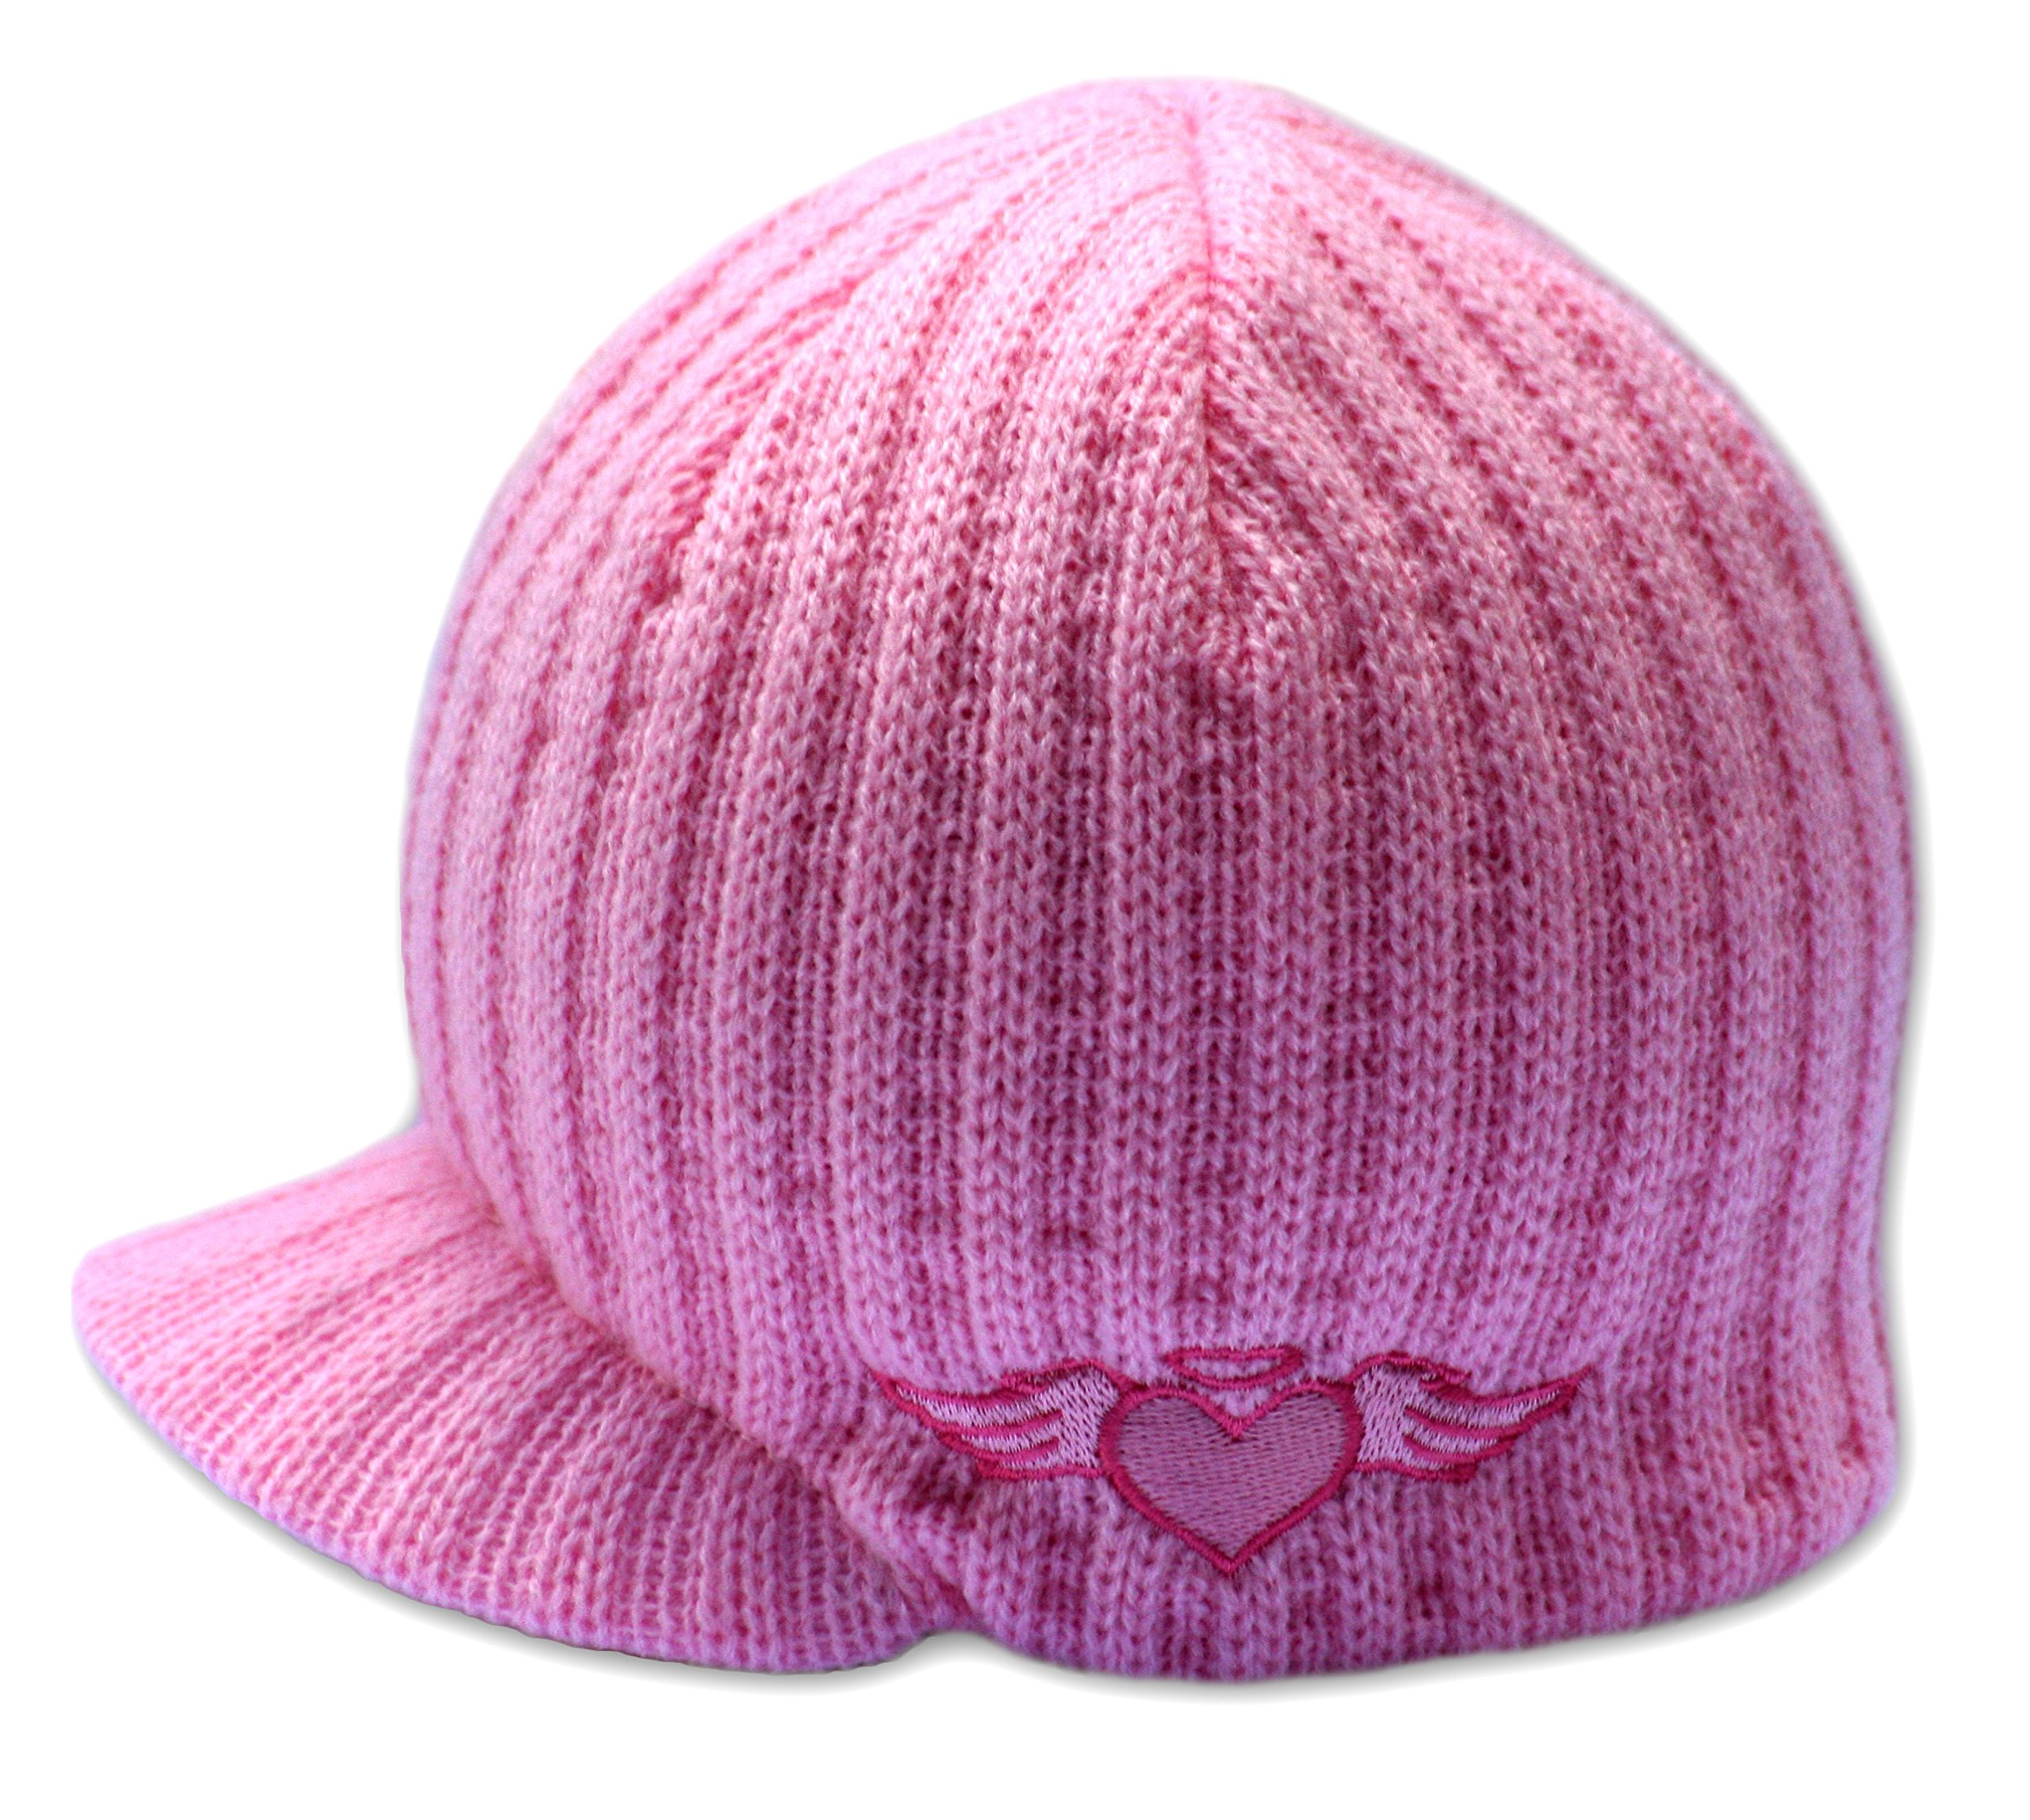 f8e50c6c4 Best Rated in Girls' Cold Weather Hats & Caps & Helpful Customer ...